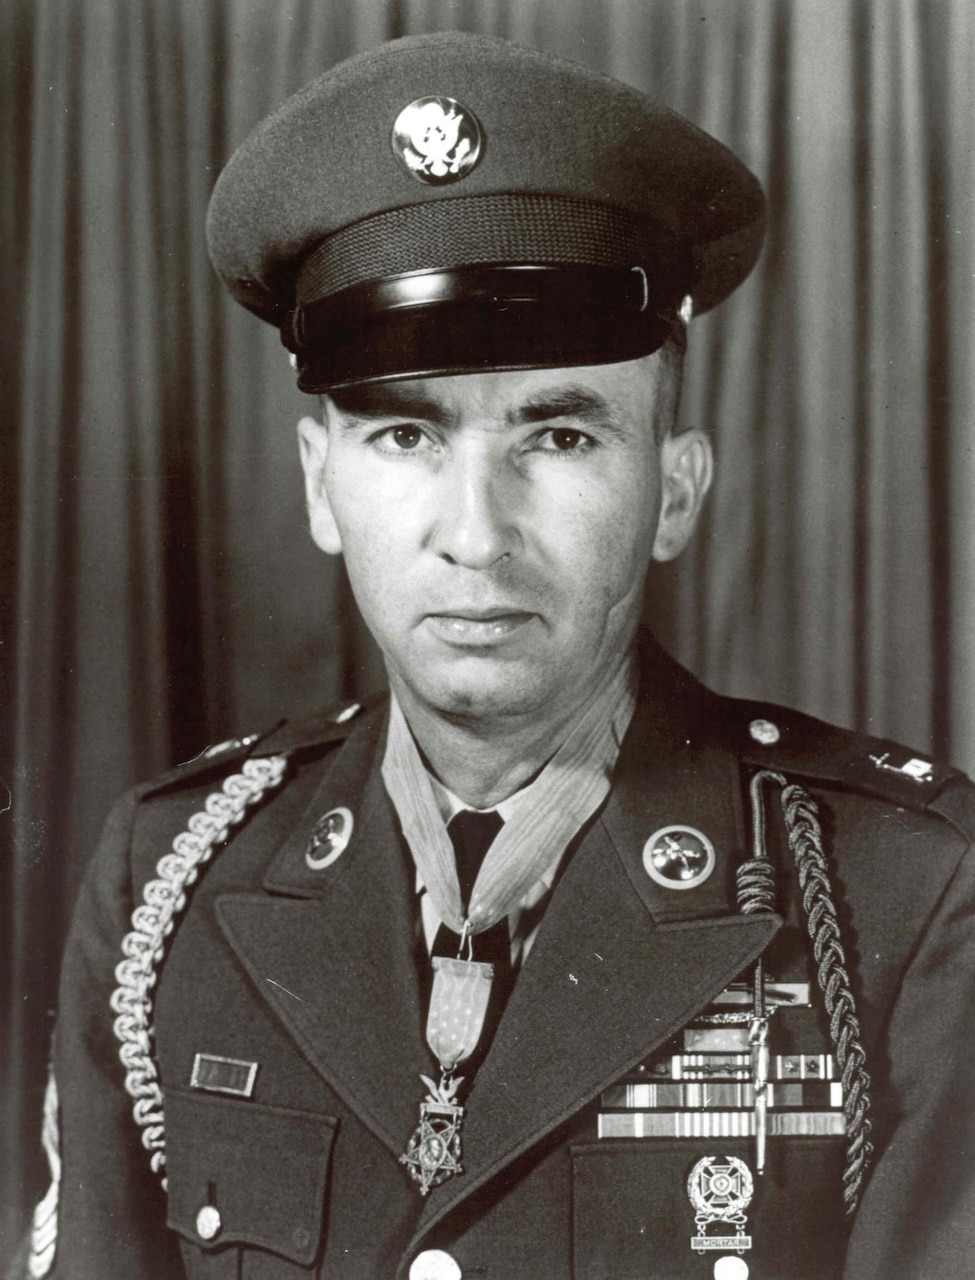 A soldier in his dress uniform and cap wears a Medal of Honor around his neck.